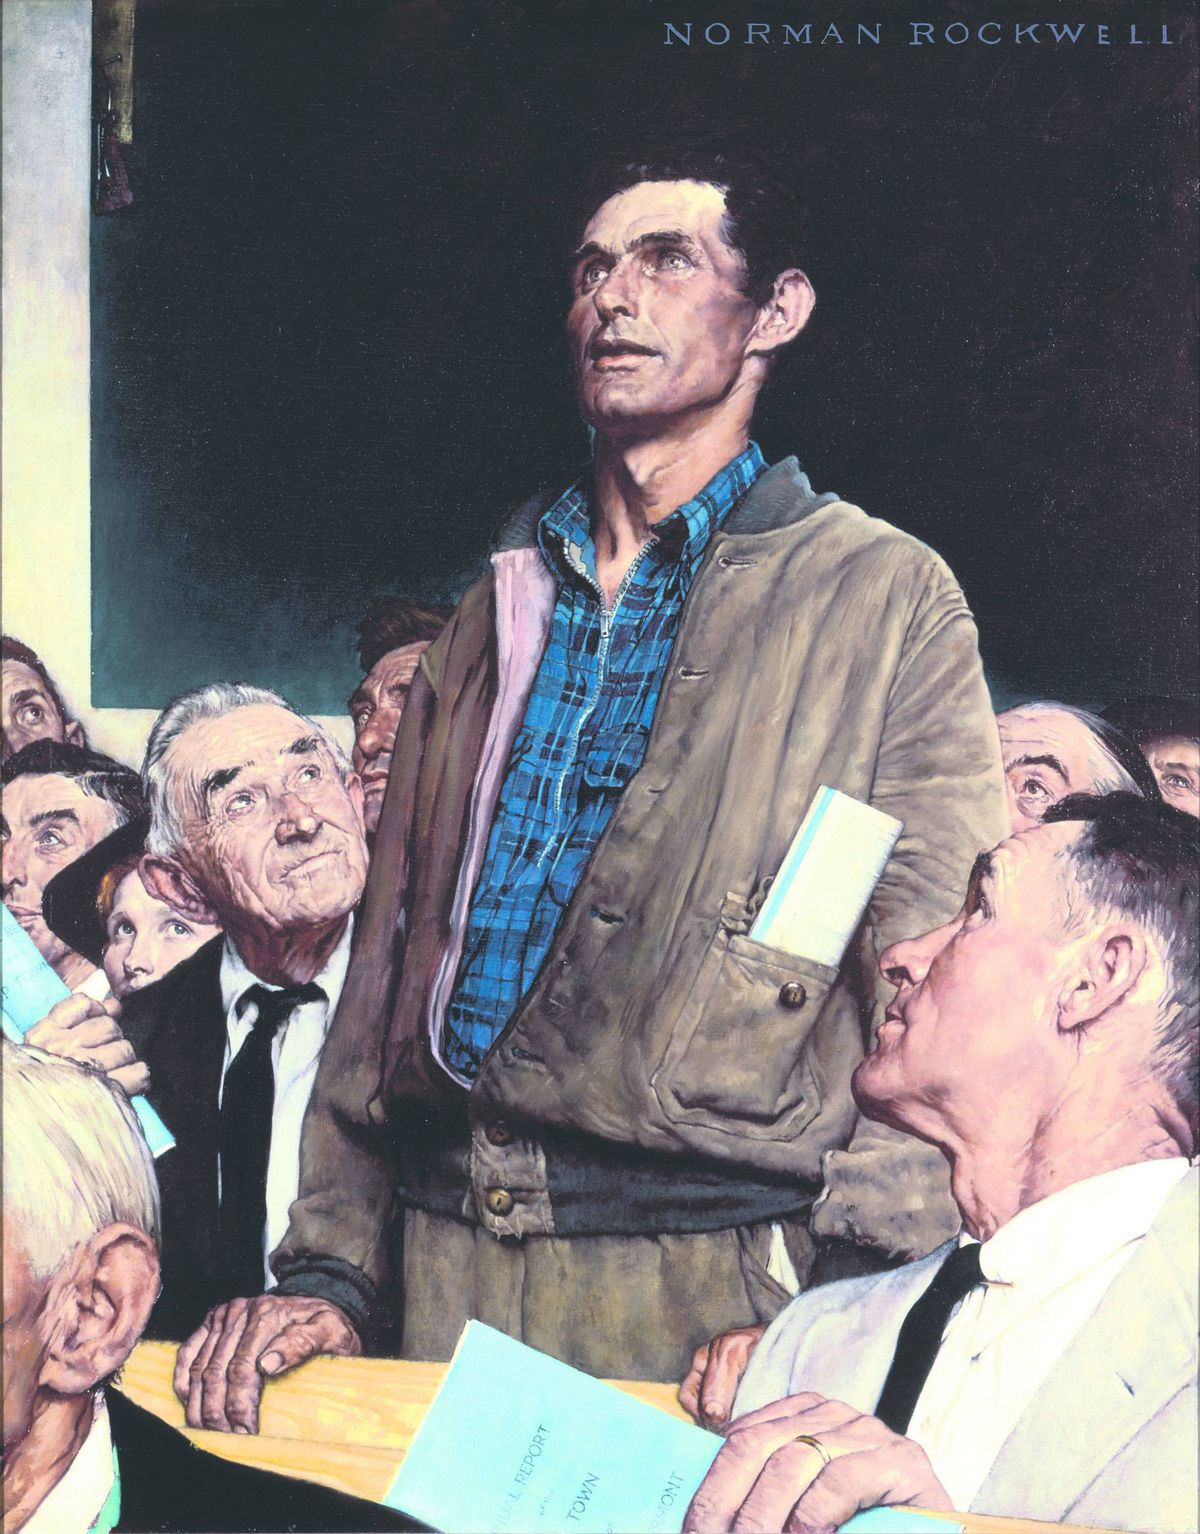 Freedom of Speech Norman Rockwell, 1943 War bond poster. Story illustration for The Saturday Evening Post, February 20, 1943.